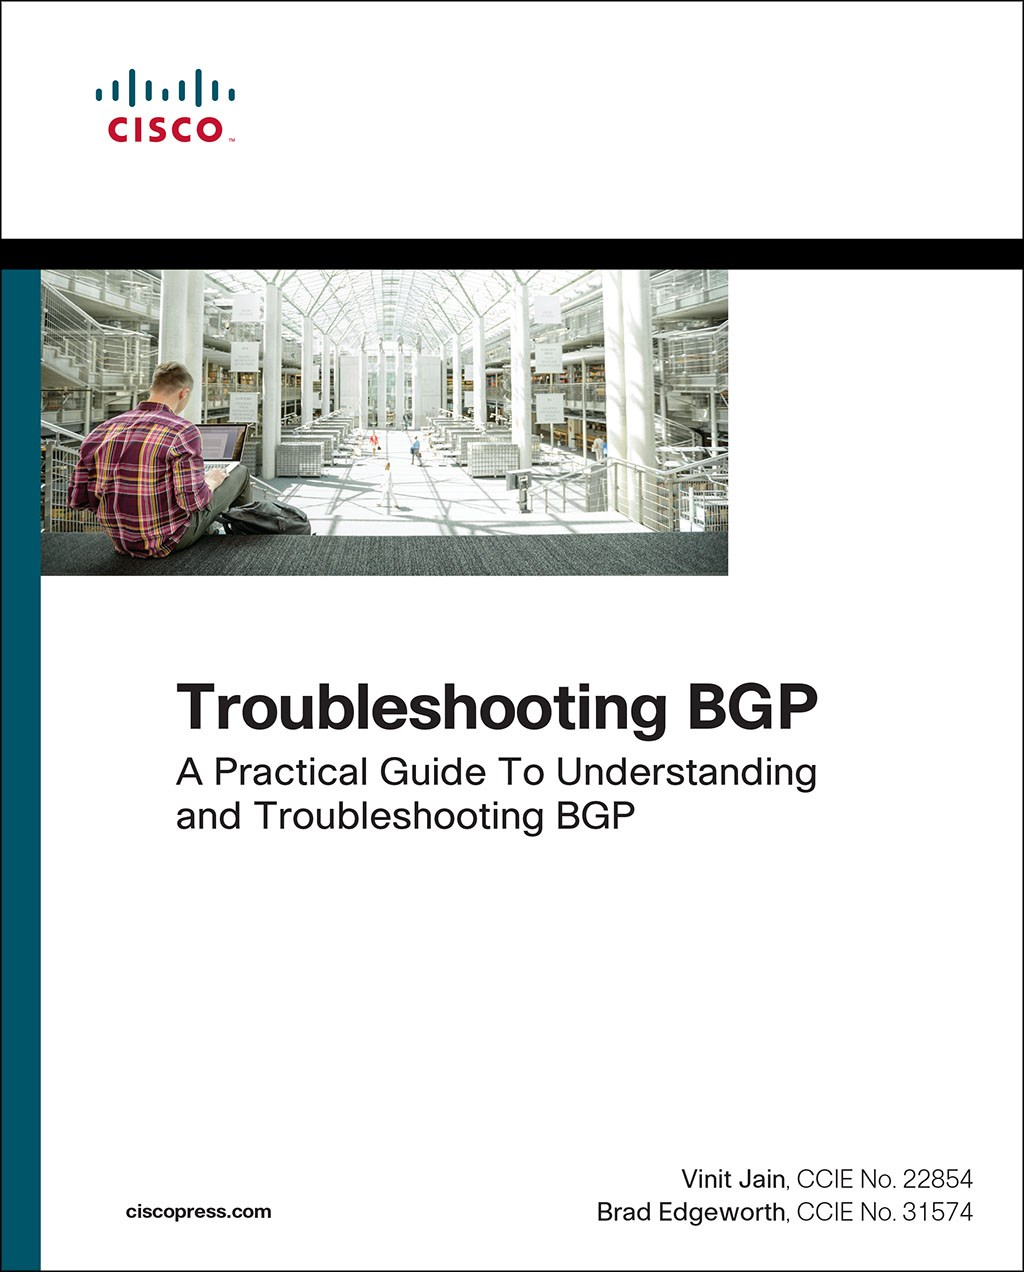 Troubleshooting BGP: A Practical Guide to Understanding and